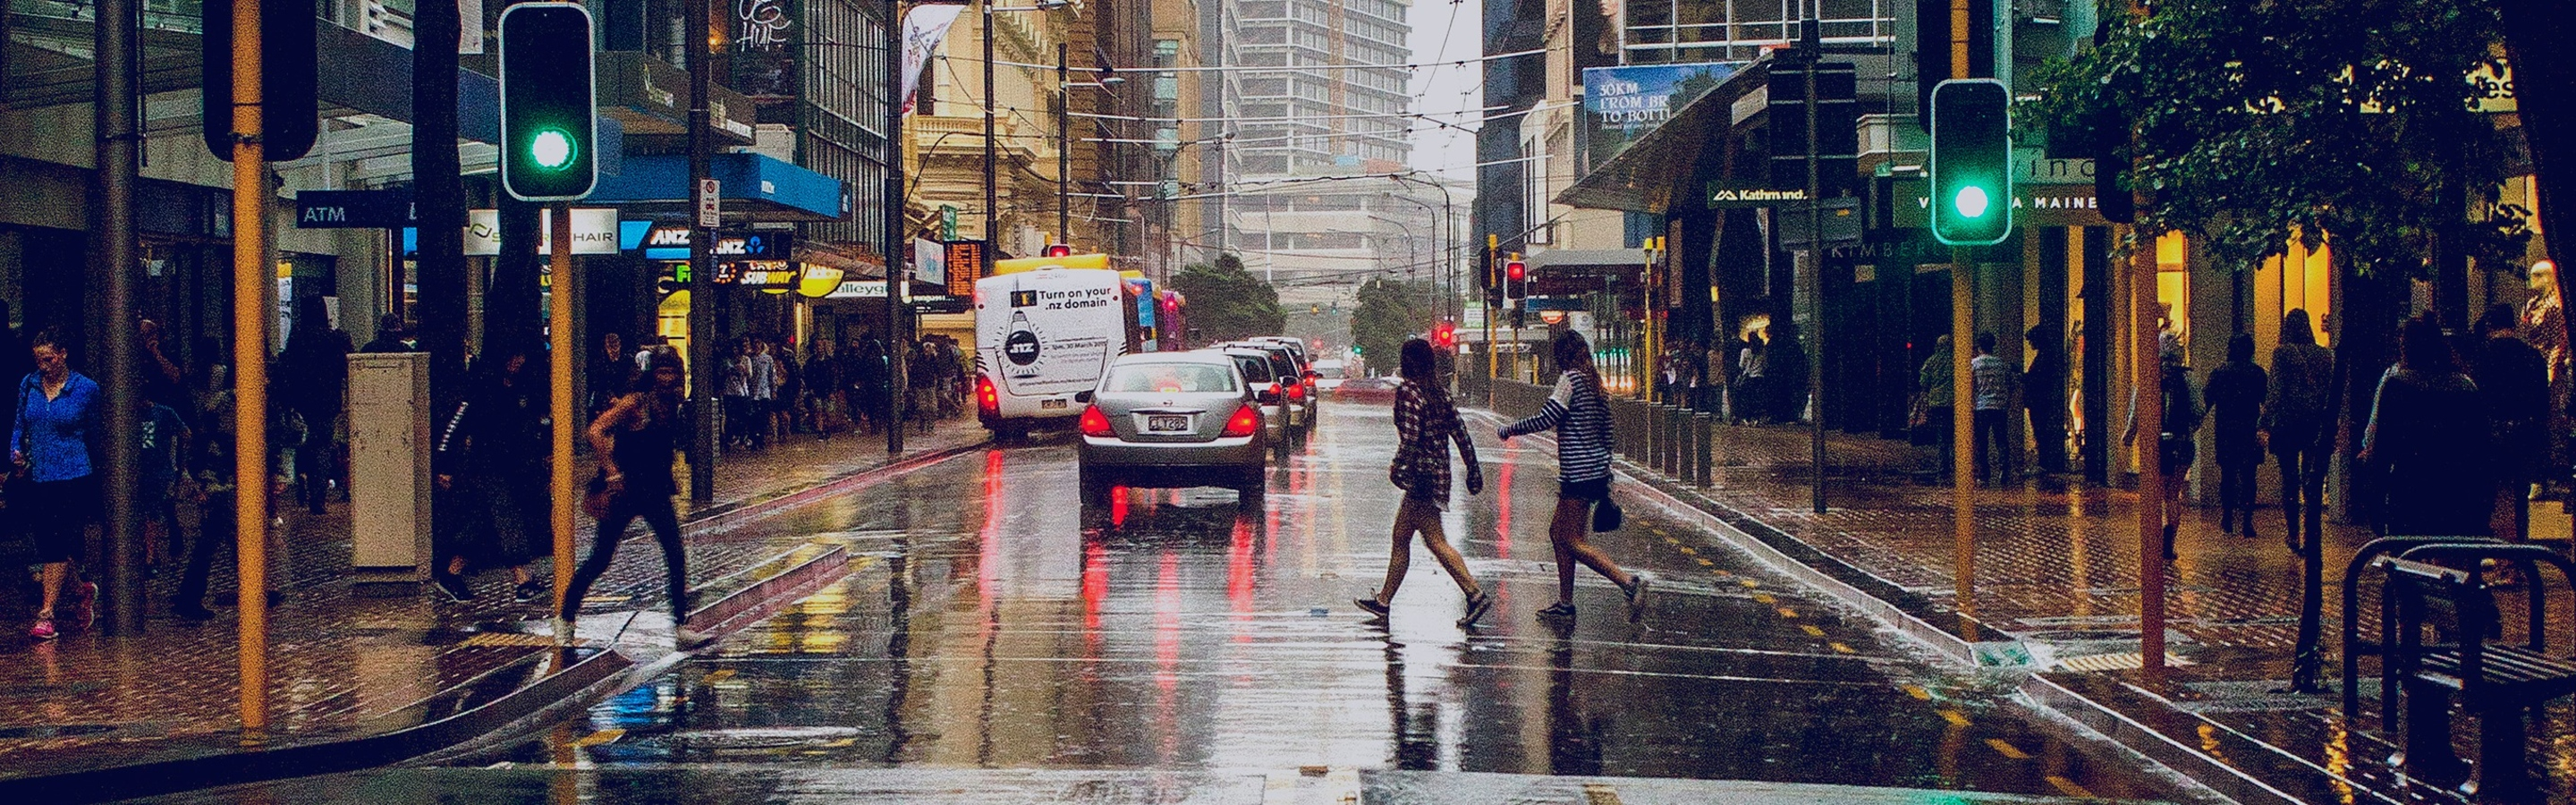 Photo of Willis Street in the rain